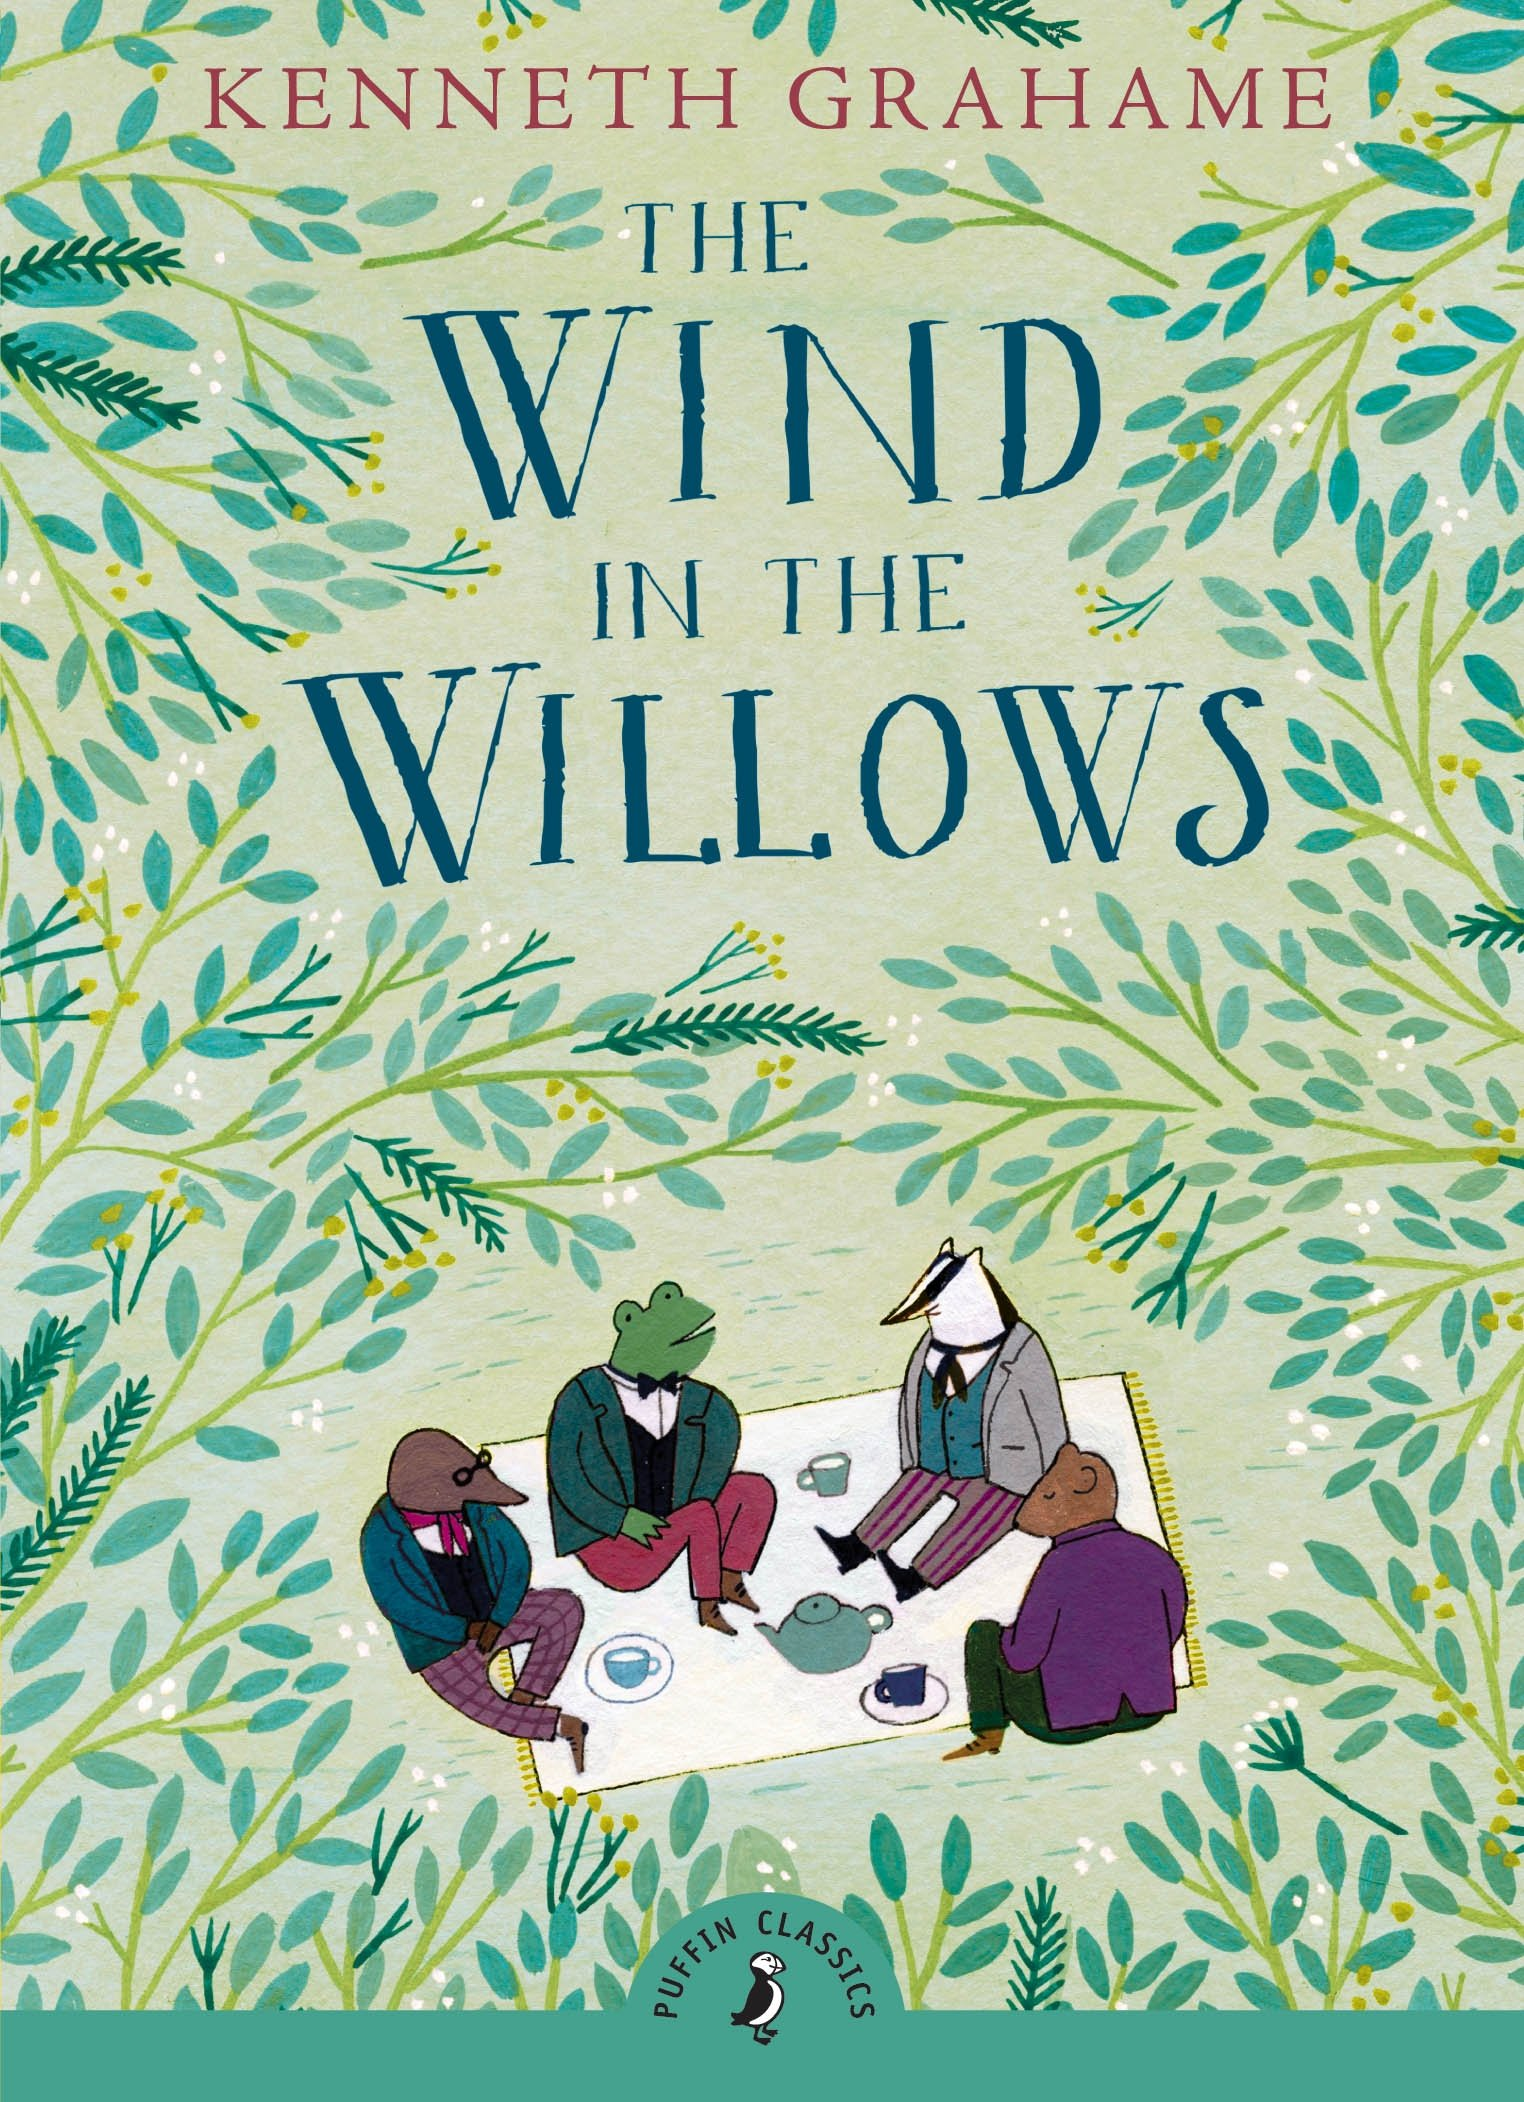 The Wind In The Willows (puffin Classics): Kenneth Grahame: 9780141321134:  Amazon: Books